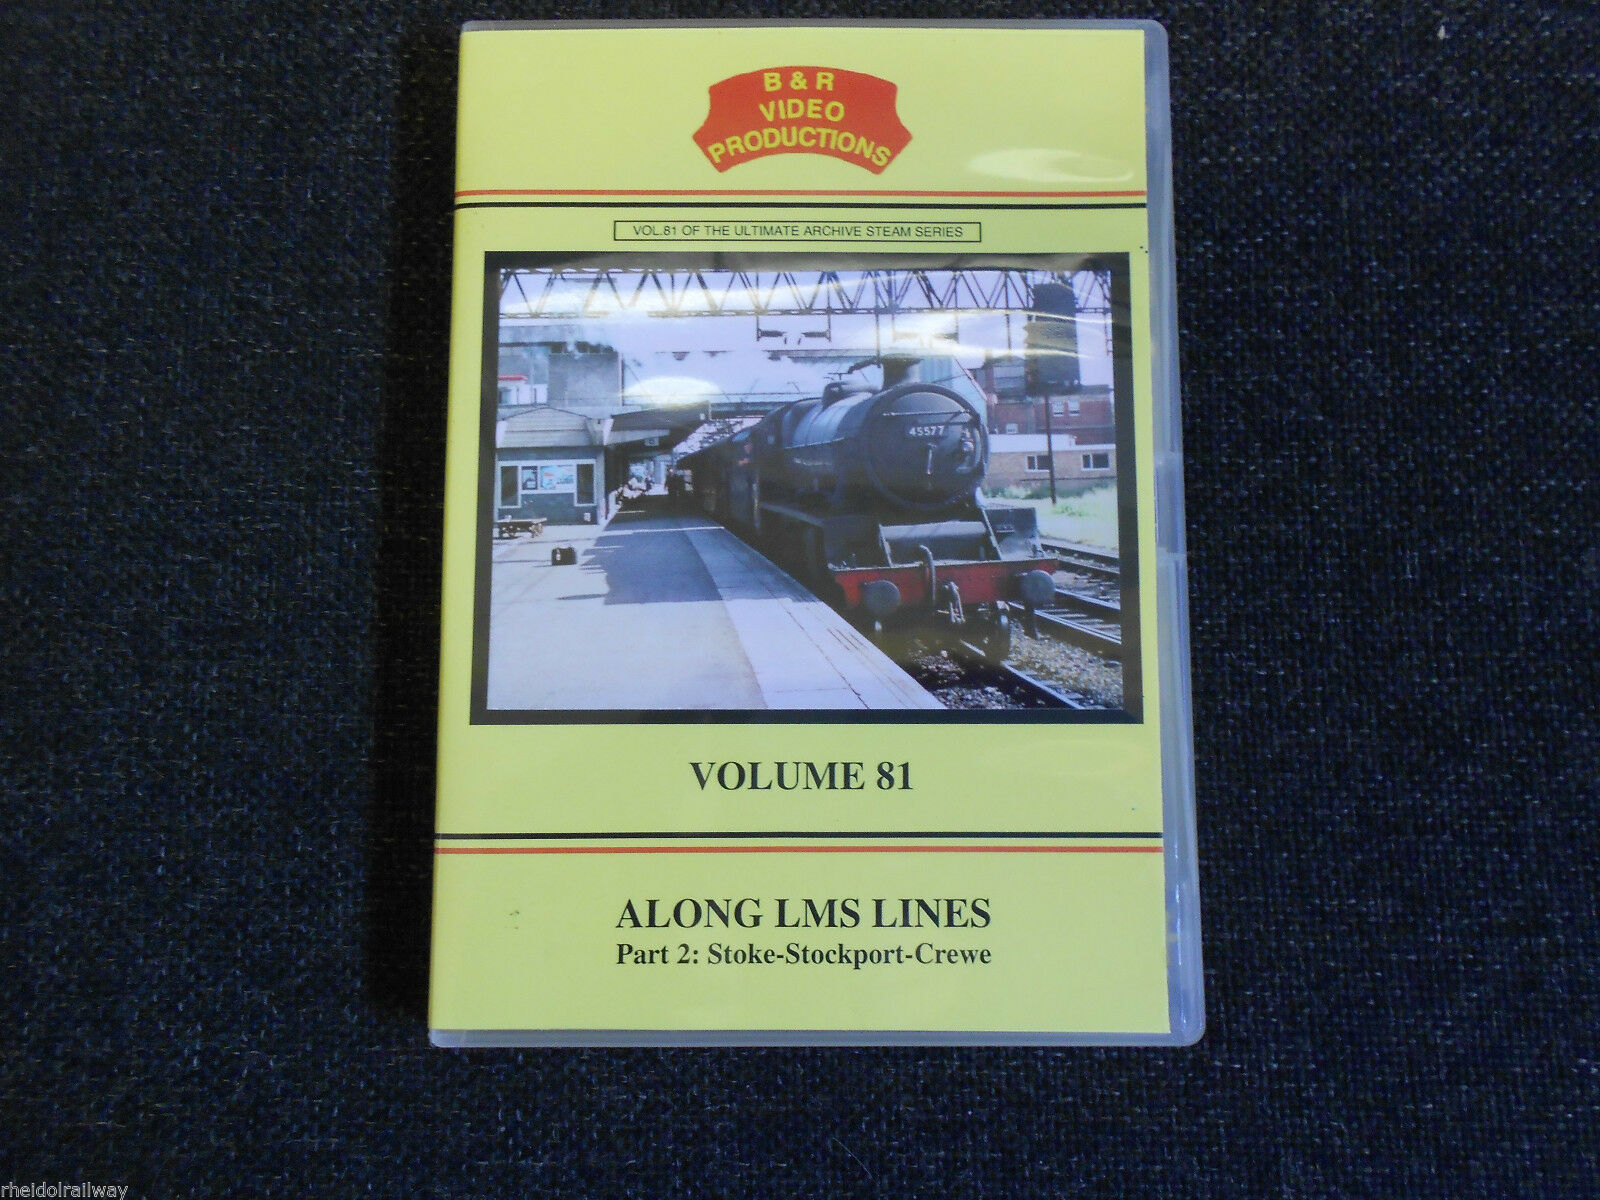 Stoke, Stockport, Crewe, Edgeley, Caldon, Along LMS Lines B&R Vol 81 DVD - The Vale of Rheidol Railway